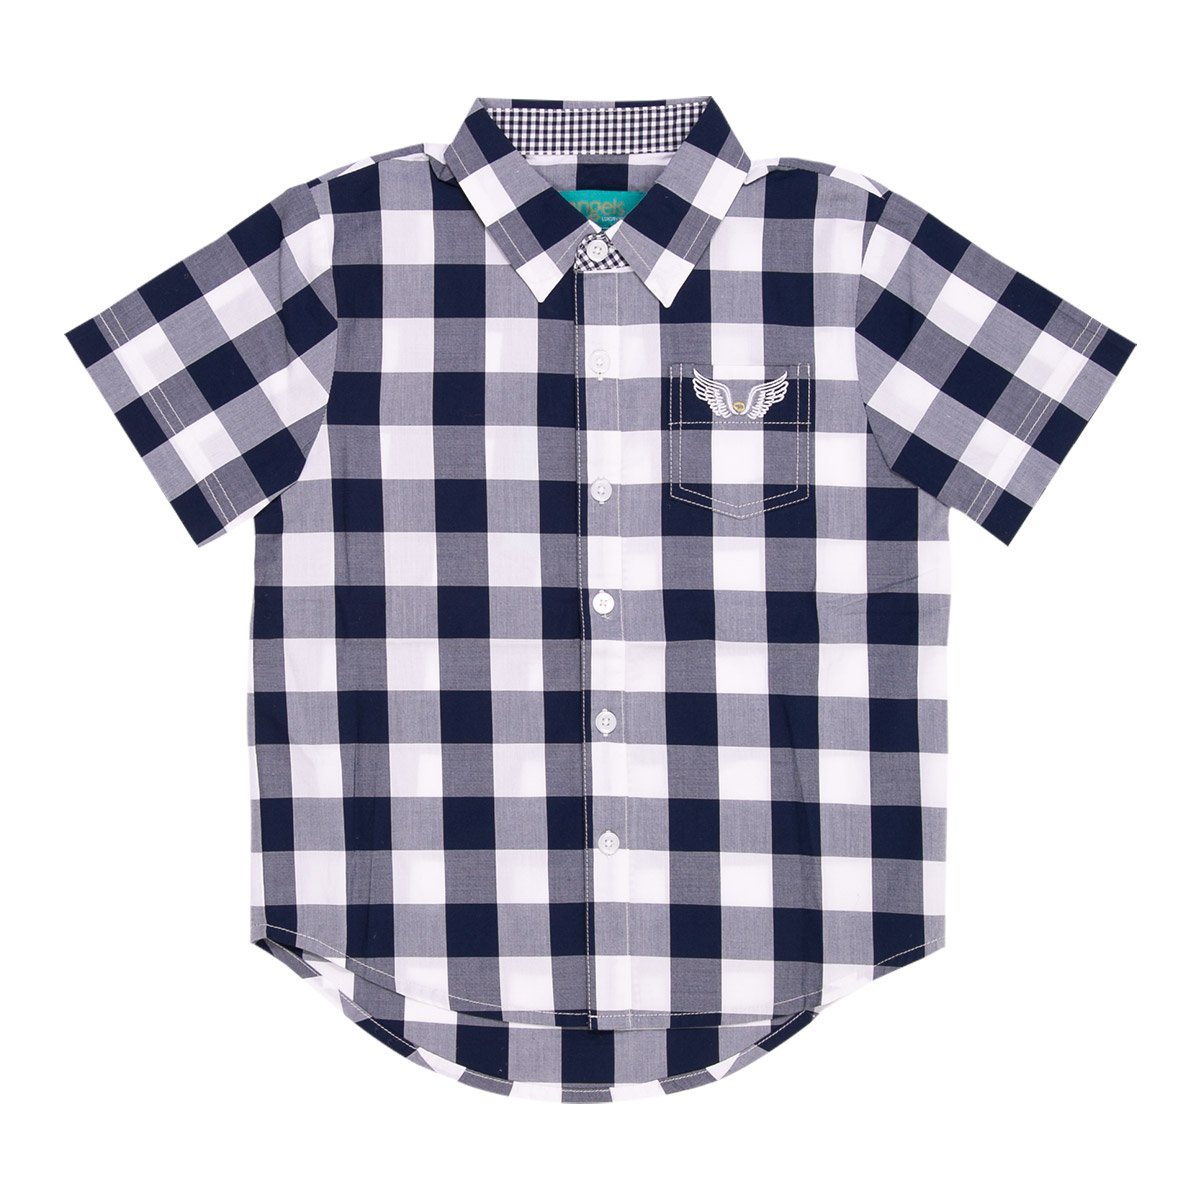 Angels Luxury Kidswear Check Shirt For Boys, Navy Blue/ White